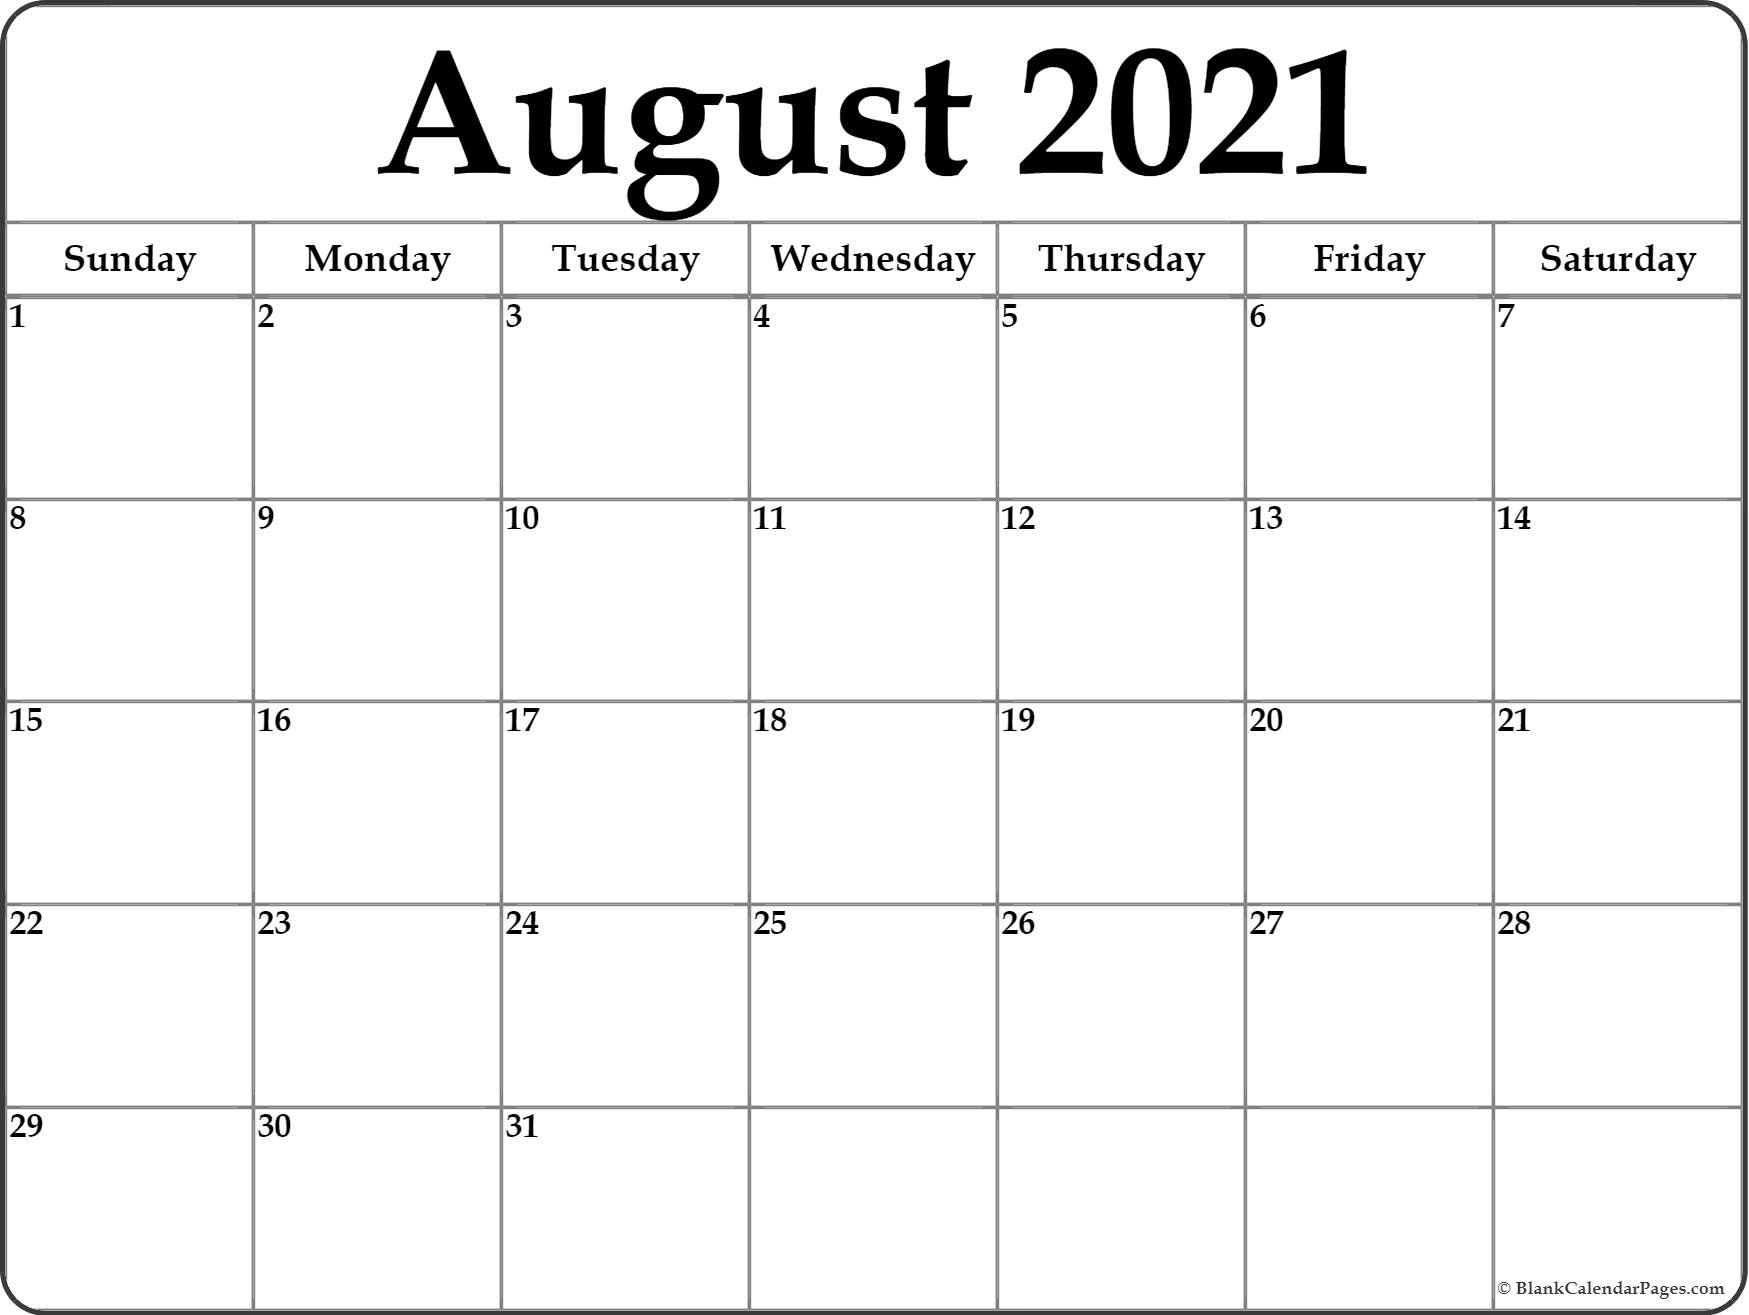 August 2021 Calendar | Free Printable Monthly Calendars